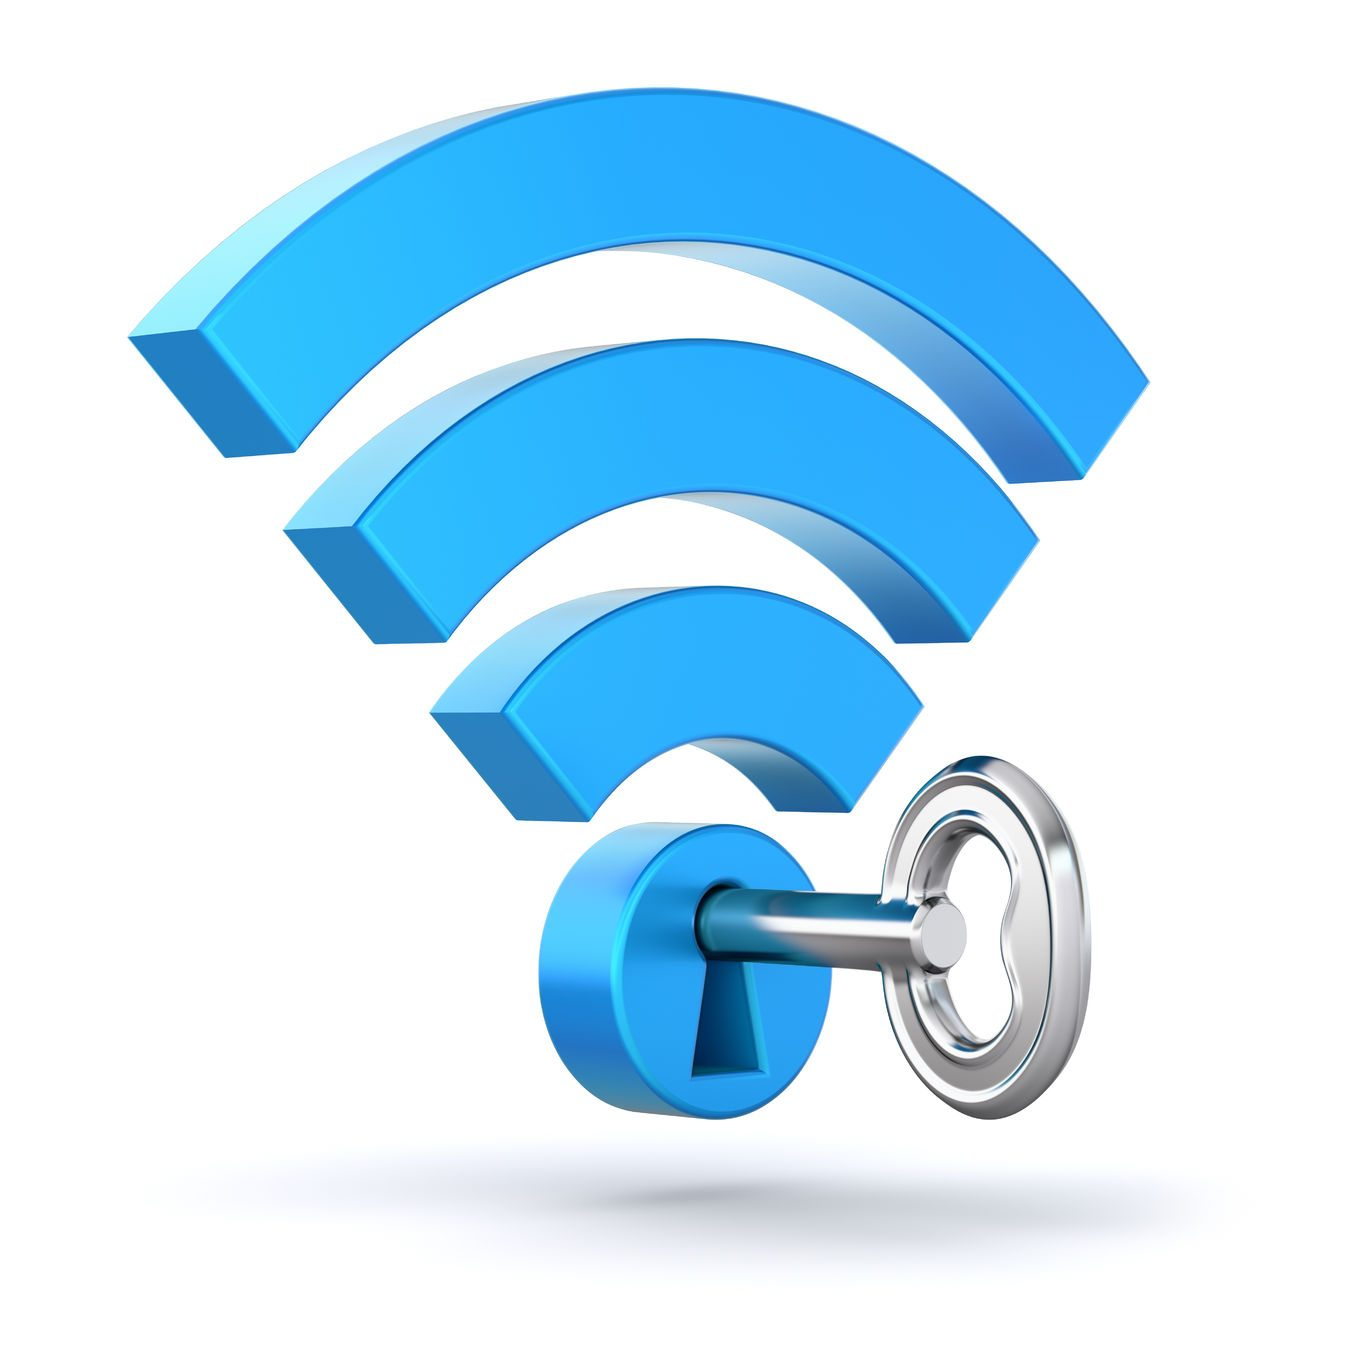 WiFi Alliance says new WPA3 wireless standard will focus on security